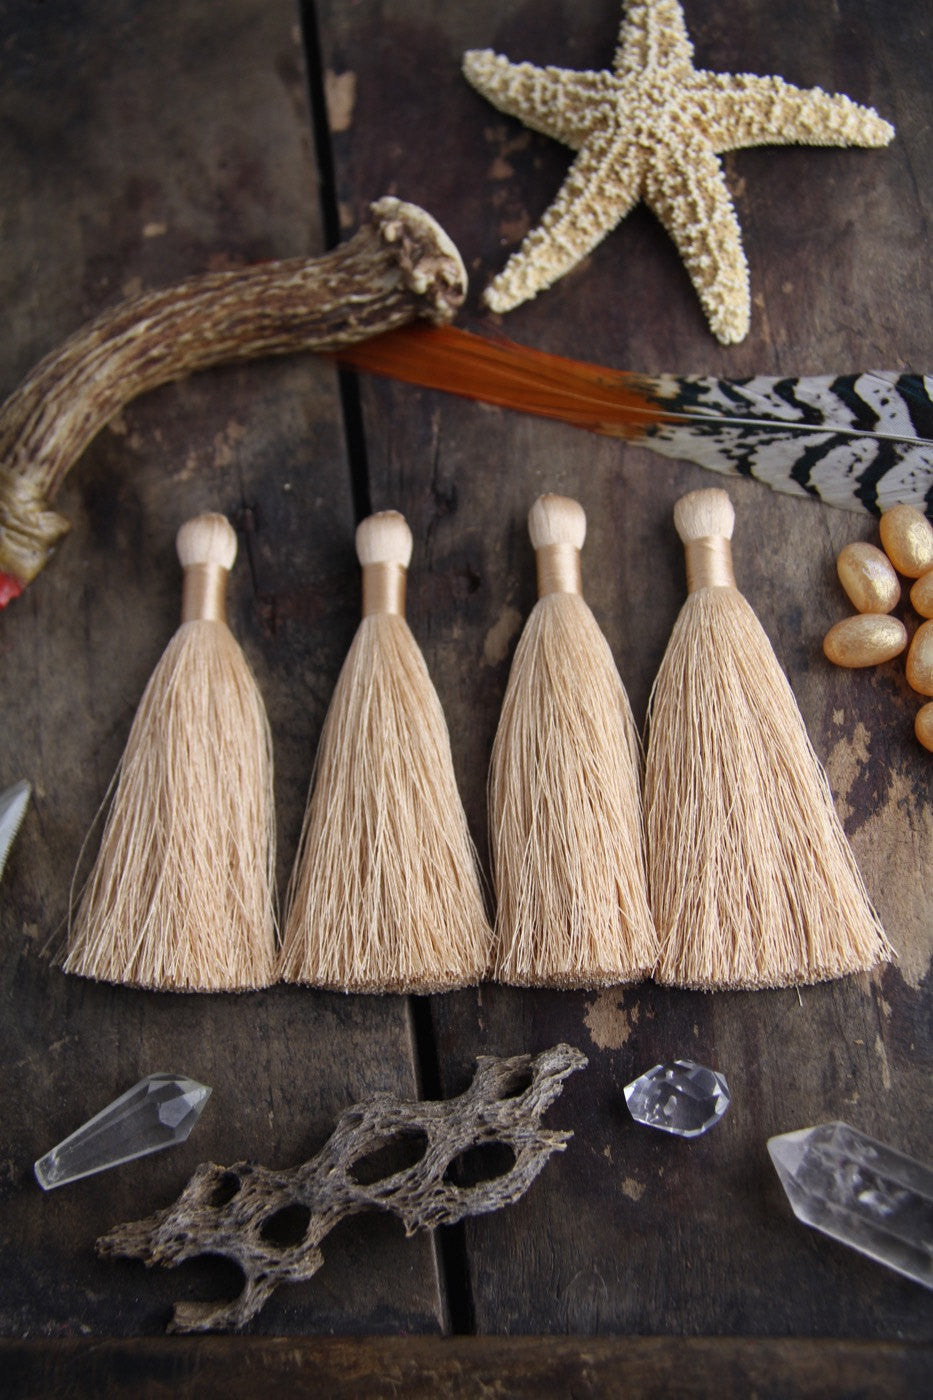 "Toasted Almond Tassels, Silky Luxe FALL, Autumn Pantone Color, 2 Handmade Long Necklace Tassels, Jewelry Making Supply, 3.5"", 2 Pieces - WomanShopsWorld"